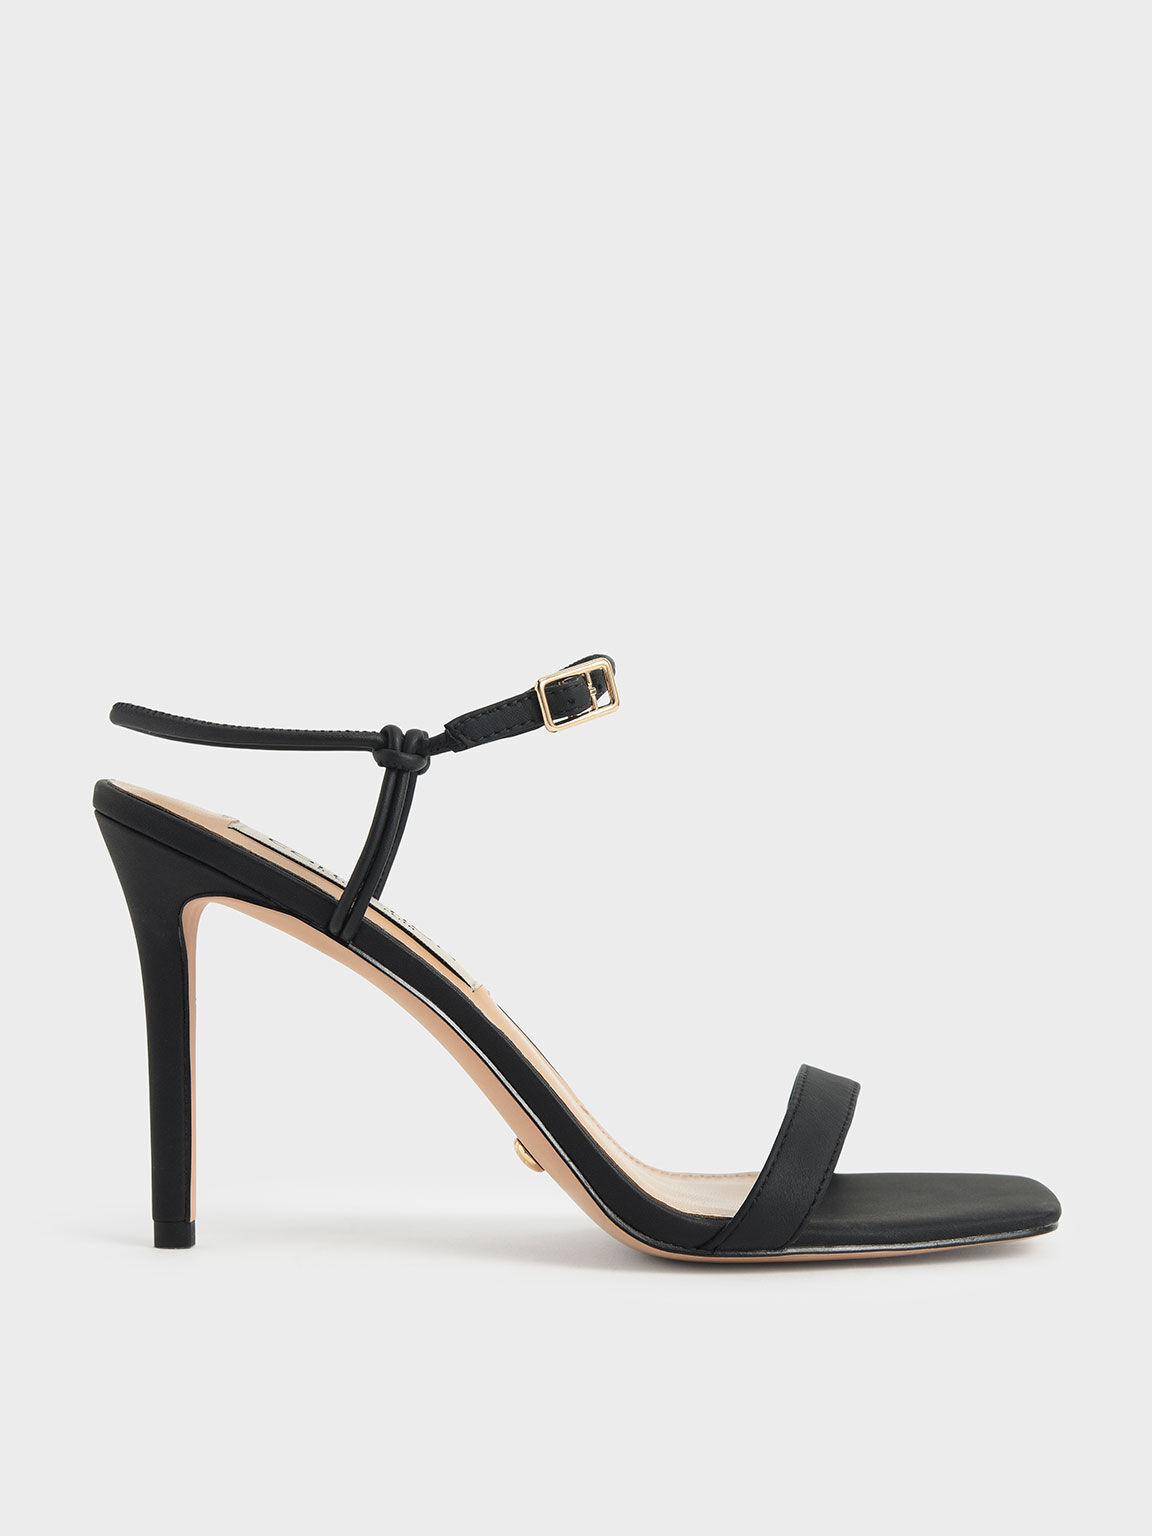 Leather Knotted Heeled Sandals, Black, hi-res